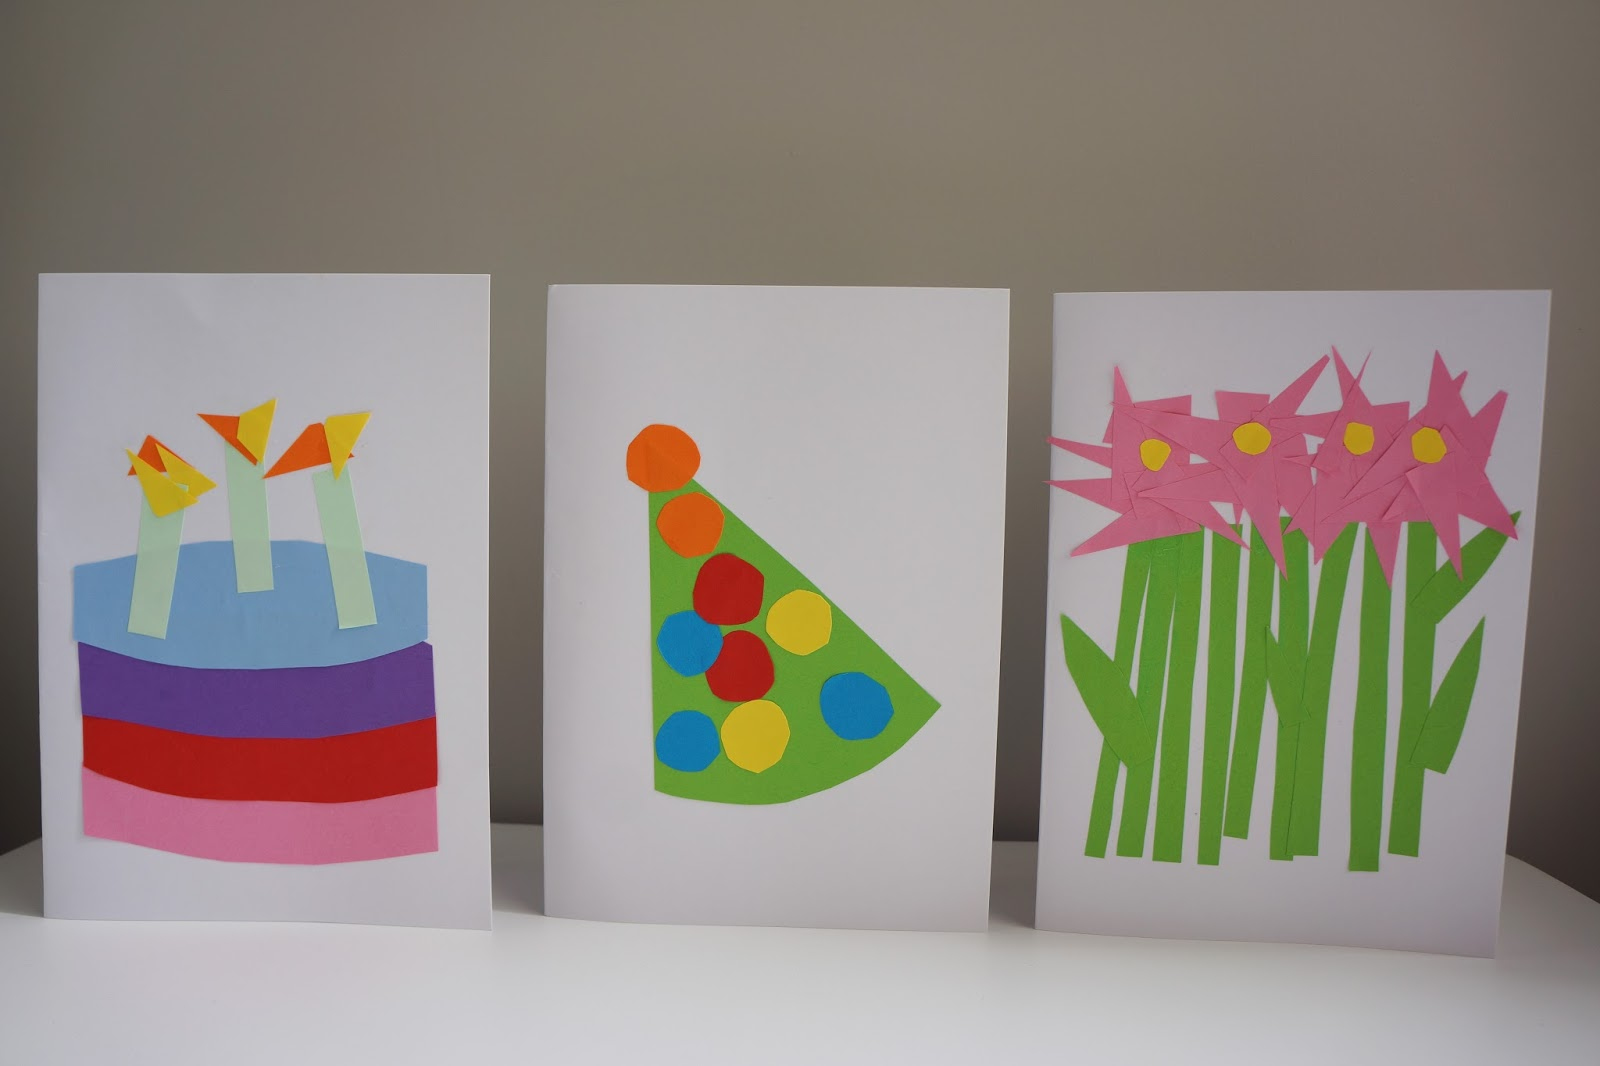 How to 3 easy birthday card crafts to do with toddlers wave to mummy 3 easy birthday card crafts to do with toddlers bookmarktalkfo Images